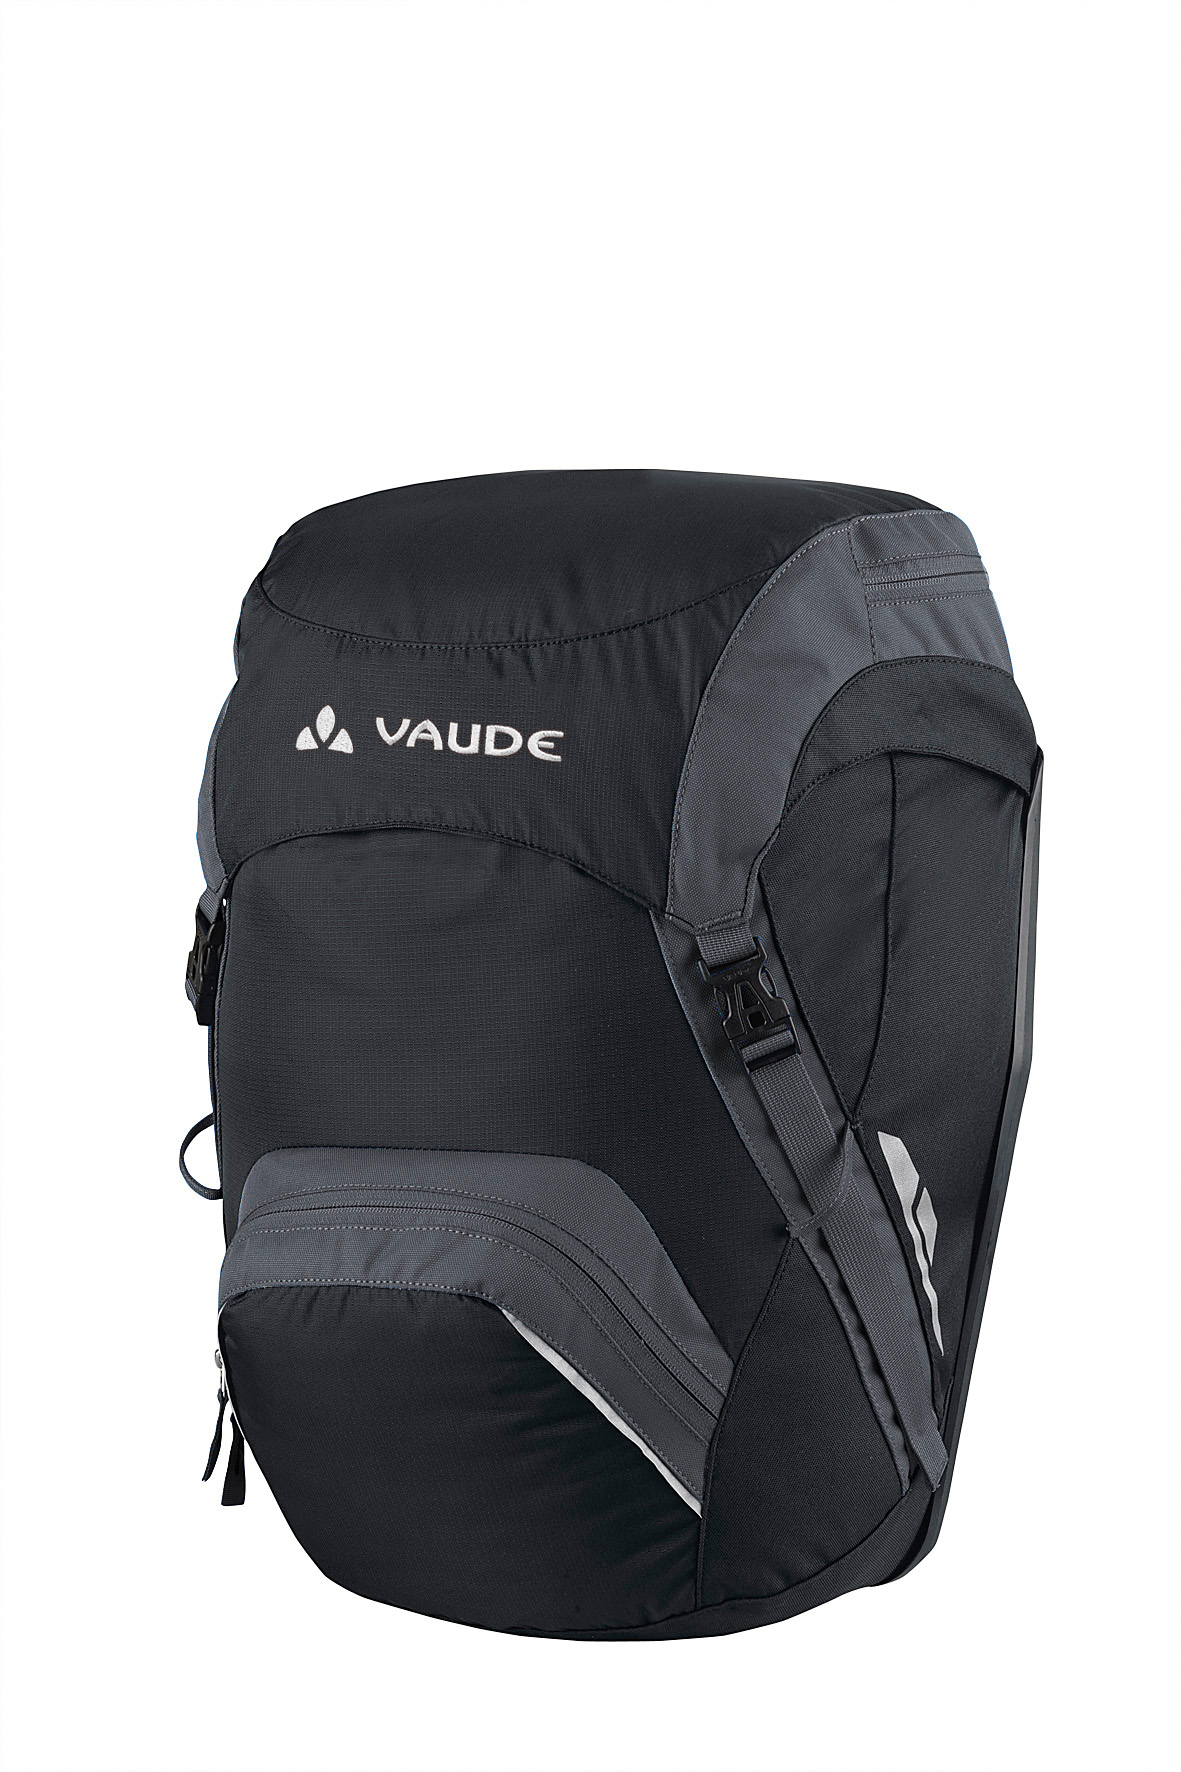 VAUDE Road Master Back black/anthracite  - schneider-sports